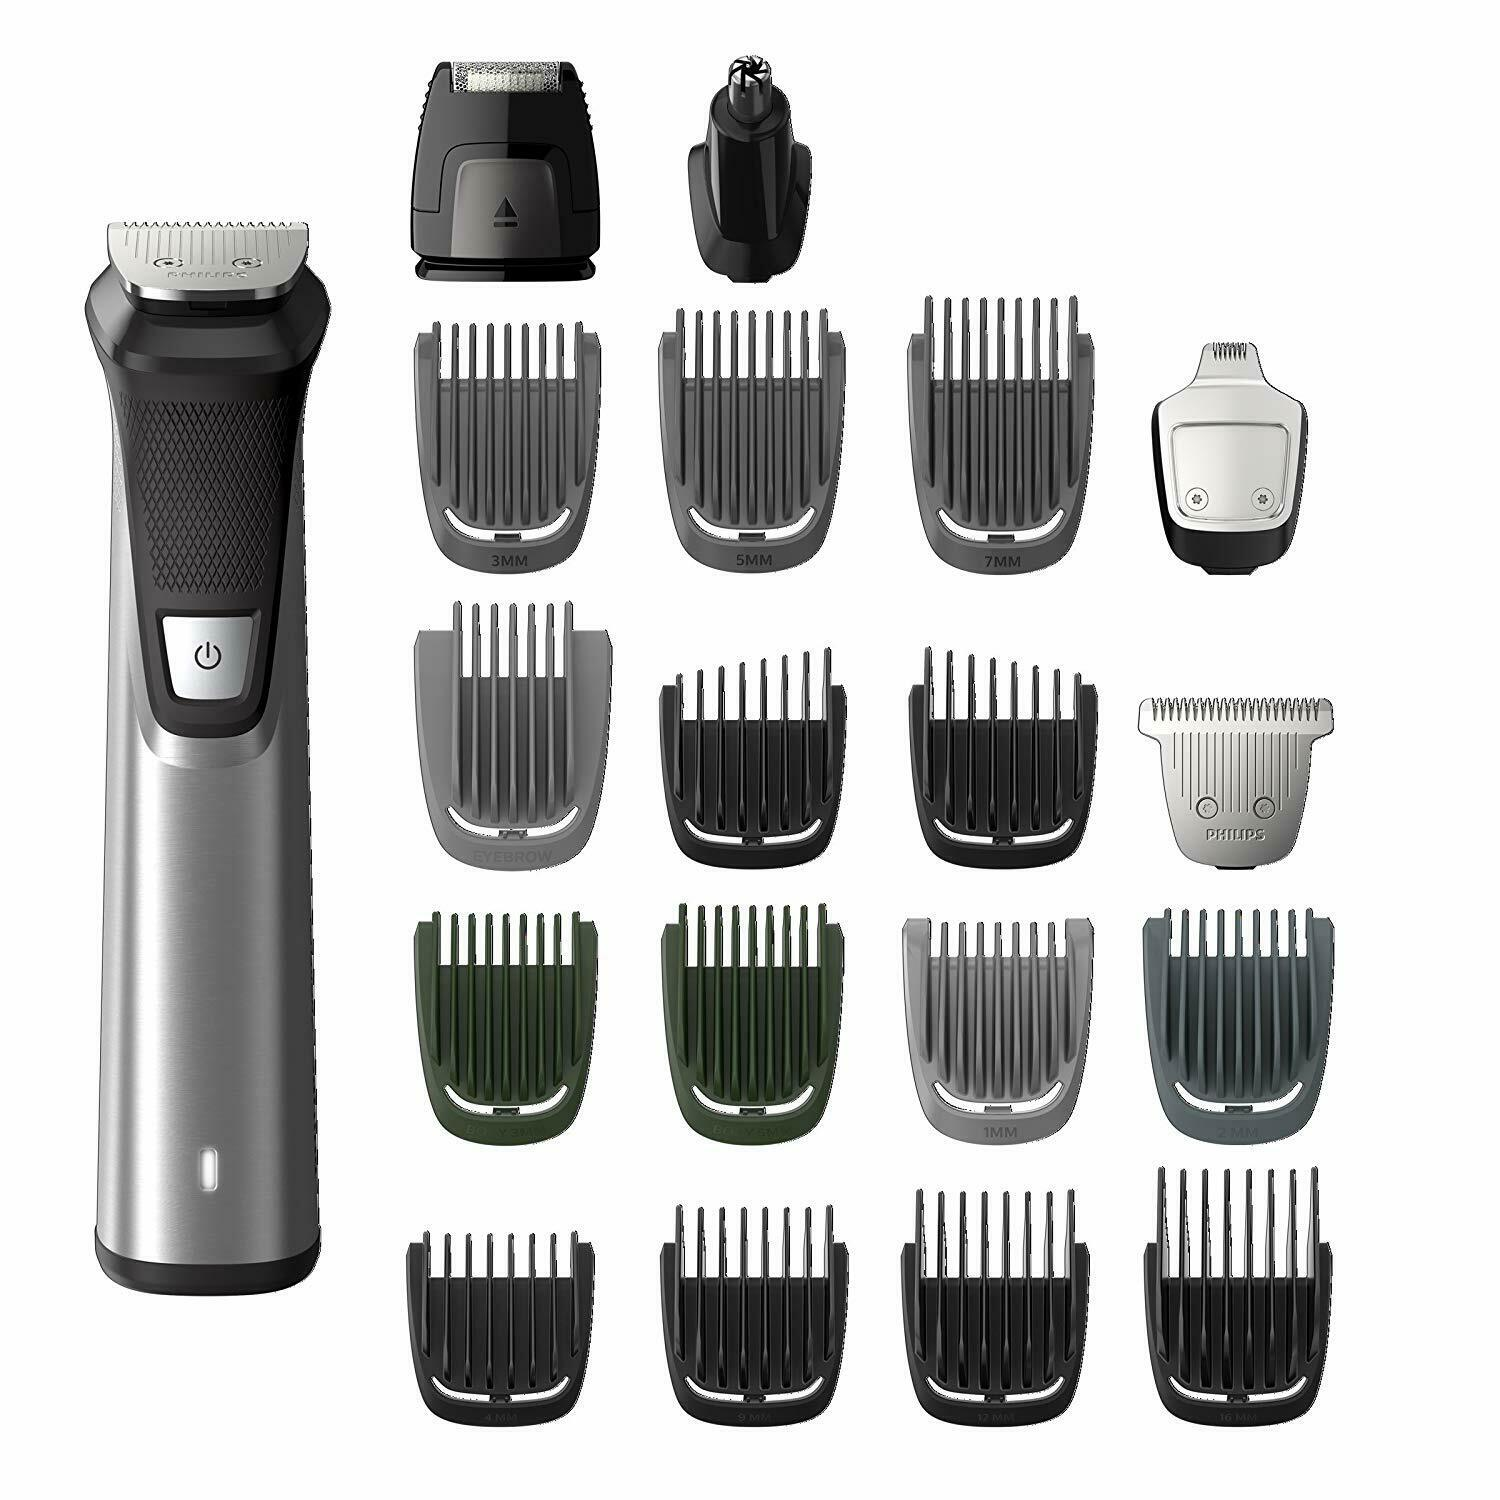 Philips Groomer 7000 Wet Dry With 19 Trimming Accessories Series